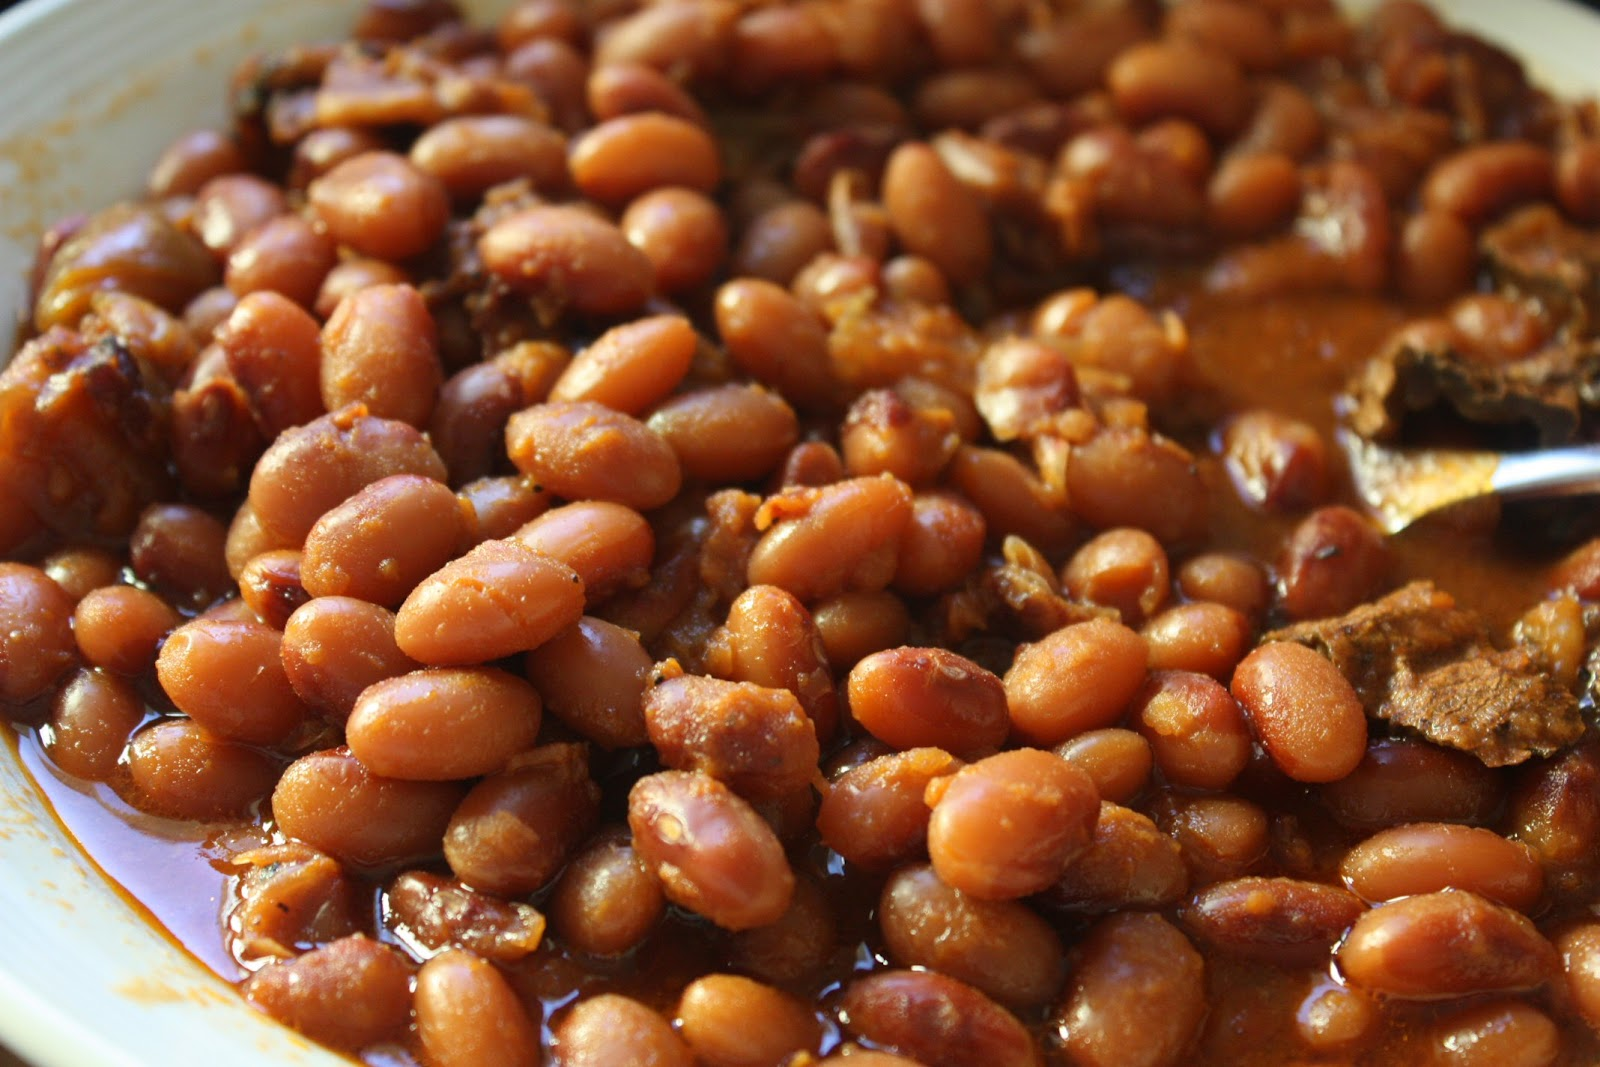 Maple chipotle baked beans